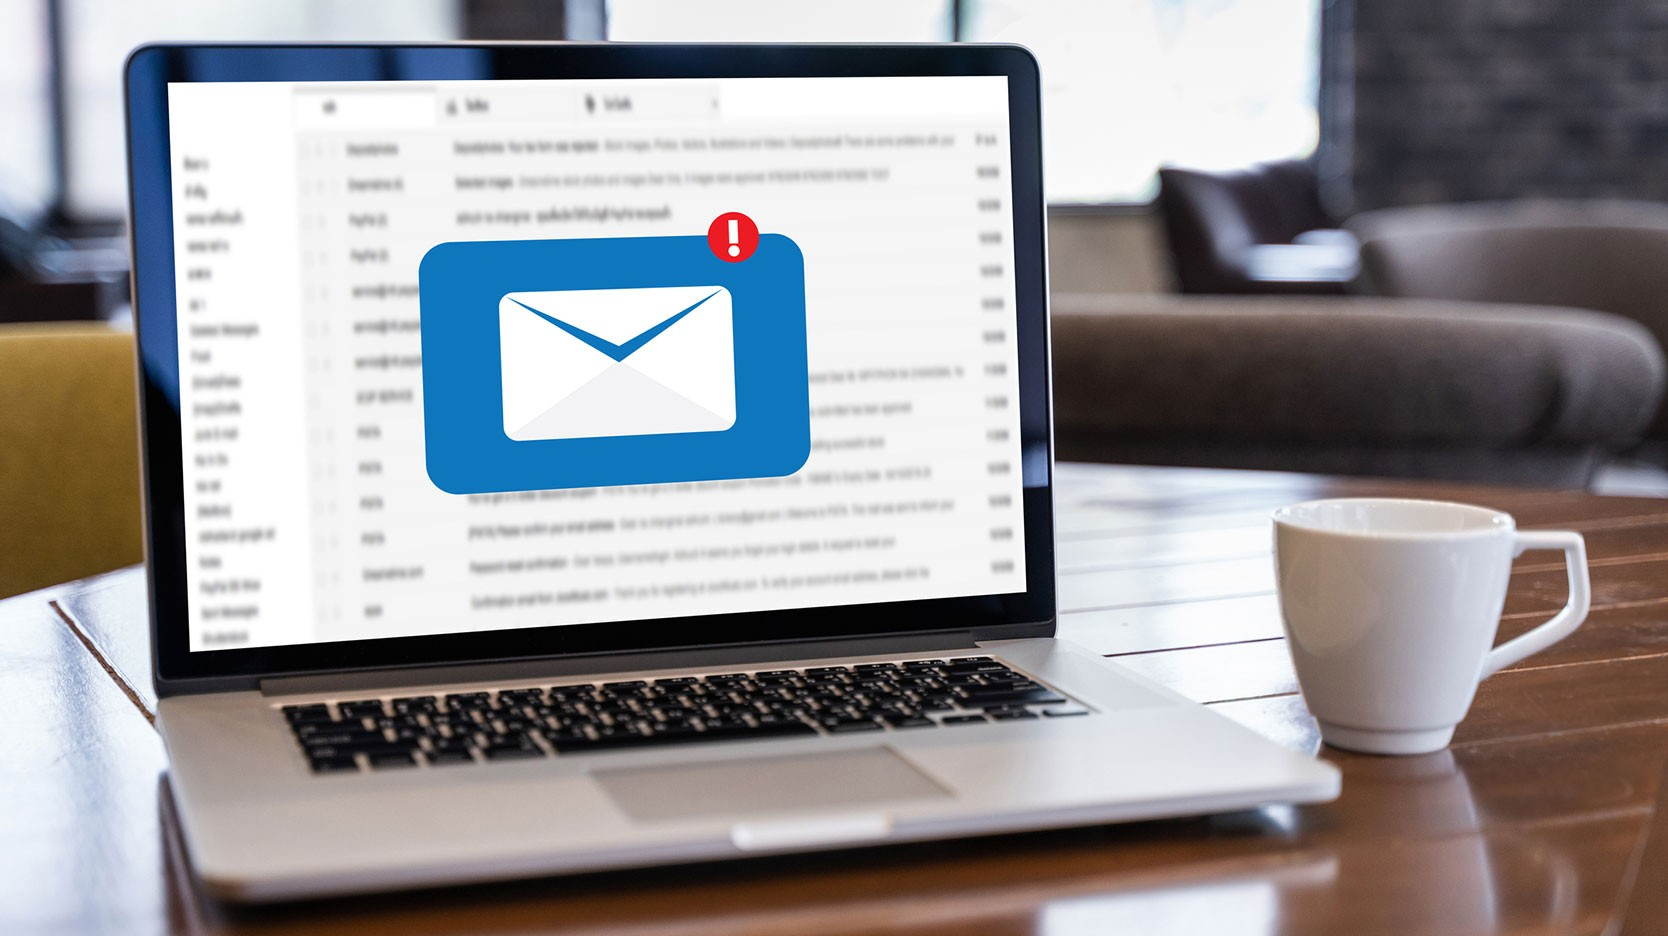 receiving email message notification on computer